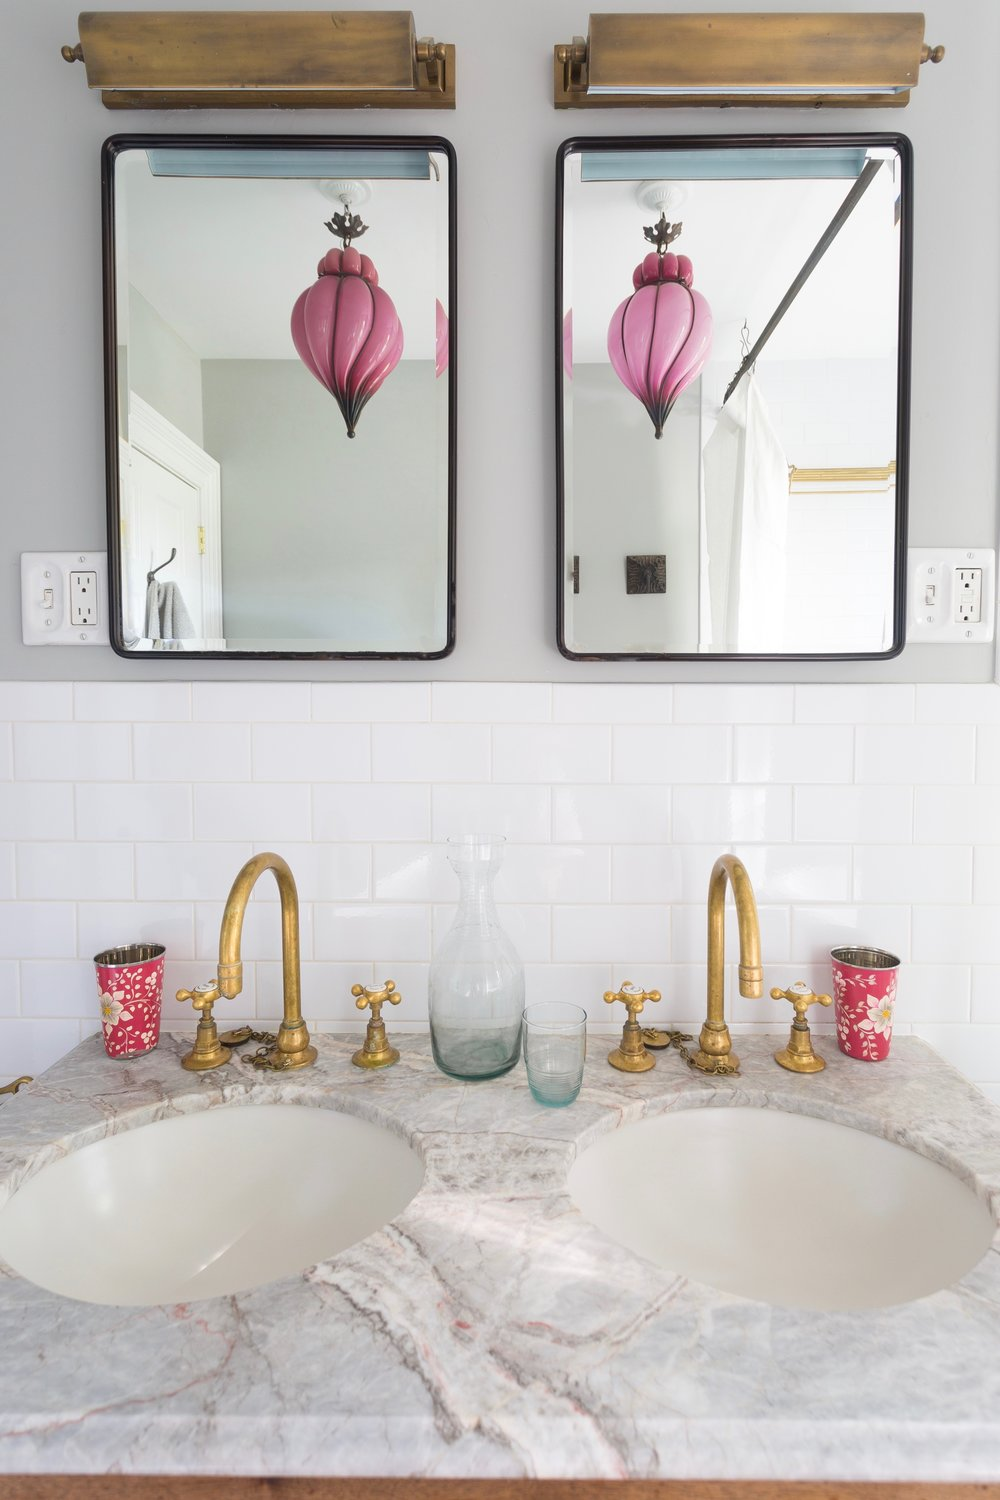 Indigo & Ochre Design Prospect Heights Bathroom Vanity Mouthblown Light Reflection